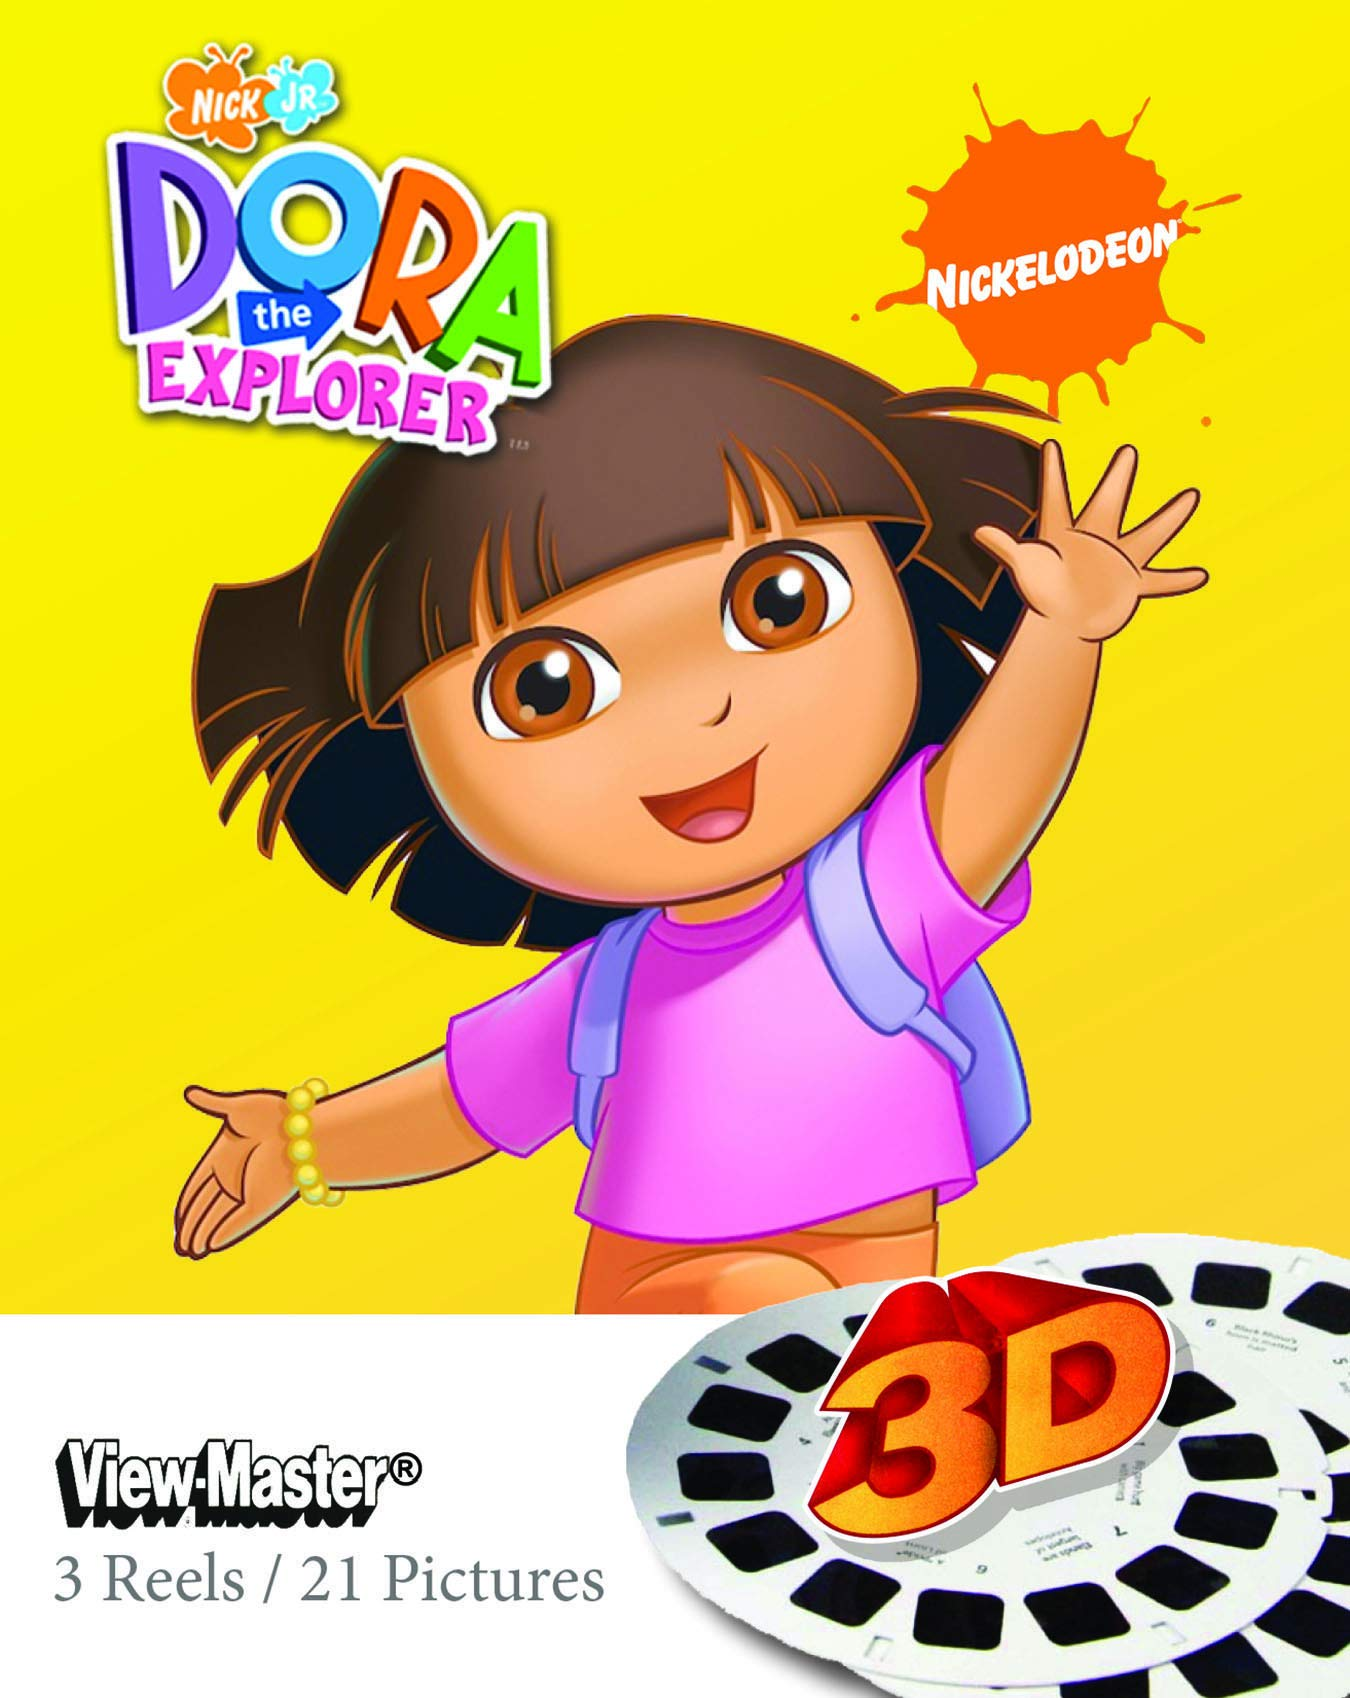 Join Dora And Her Friends - ViewMaster 3D Reels - Dora the Explorer 3-pack set by 3Dstereo ViewMaster (Image #1)